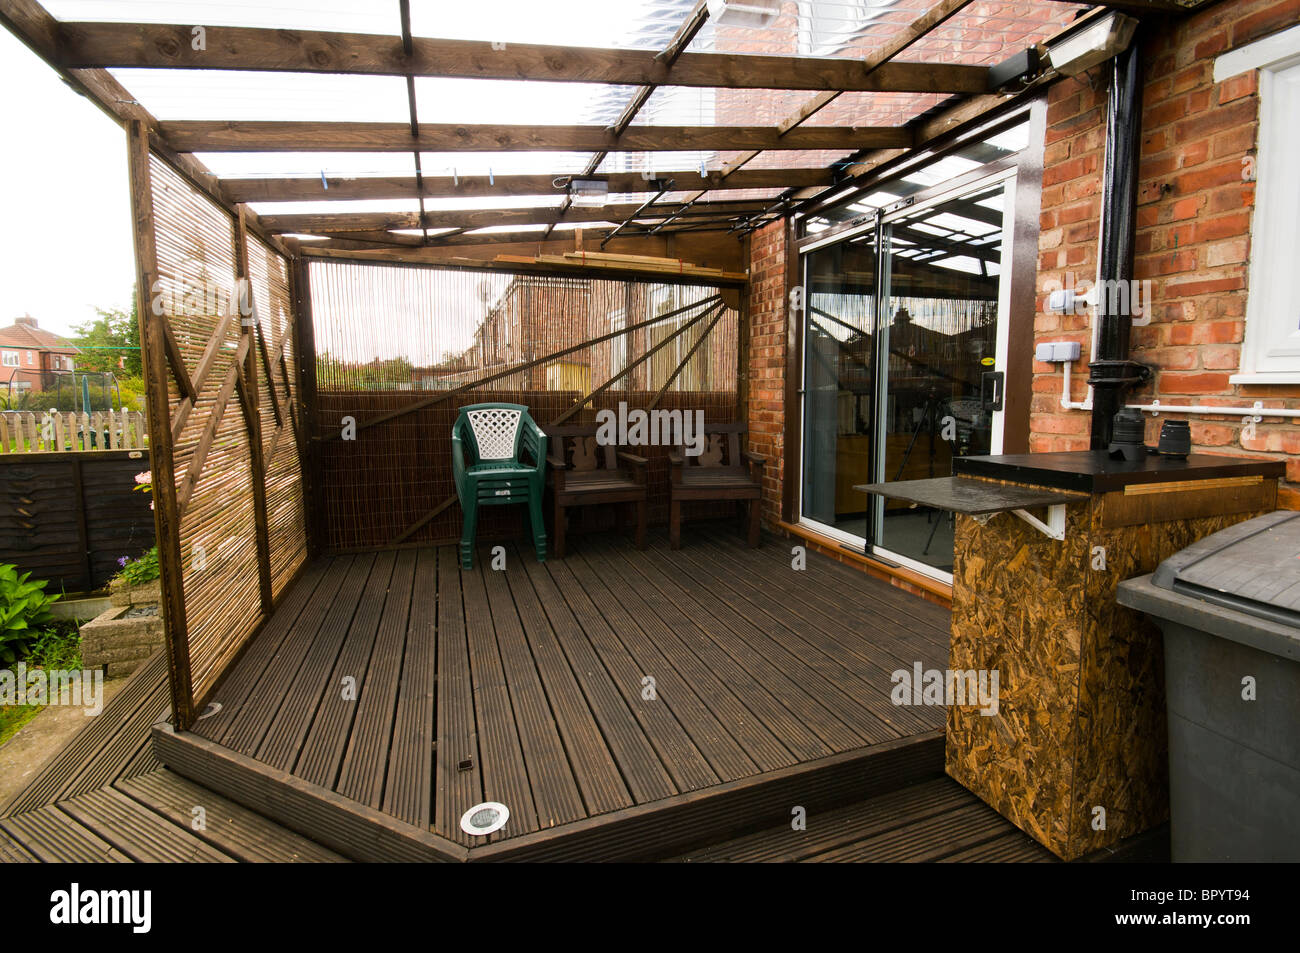 Exceptional Home Built Patio Decking With Corrugated Plastic Roofing And Movable  Screening Panels In A Domestic Setting